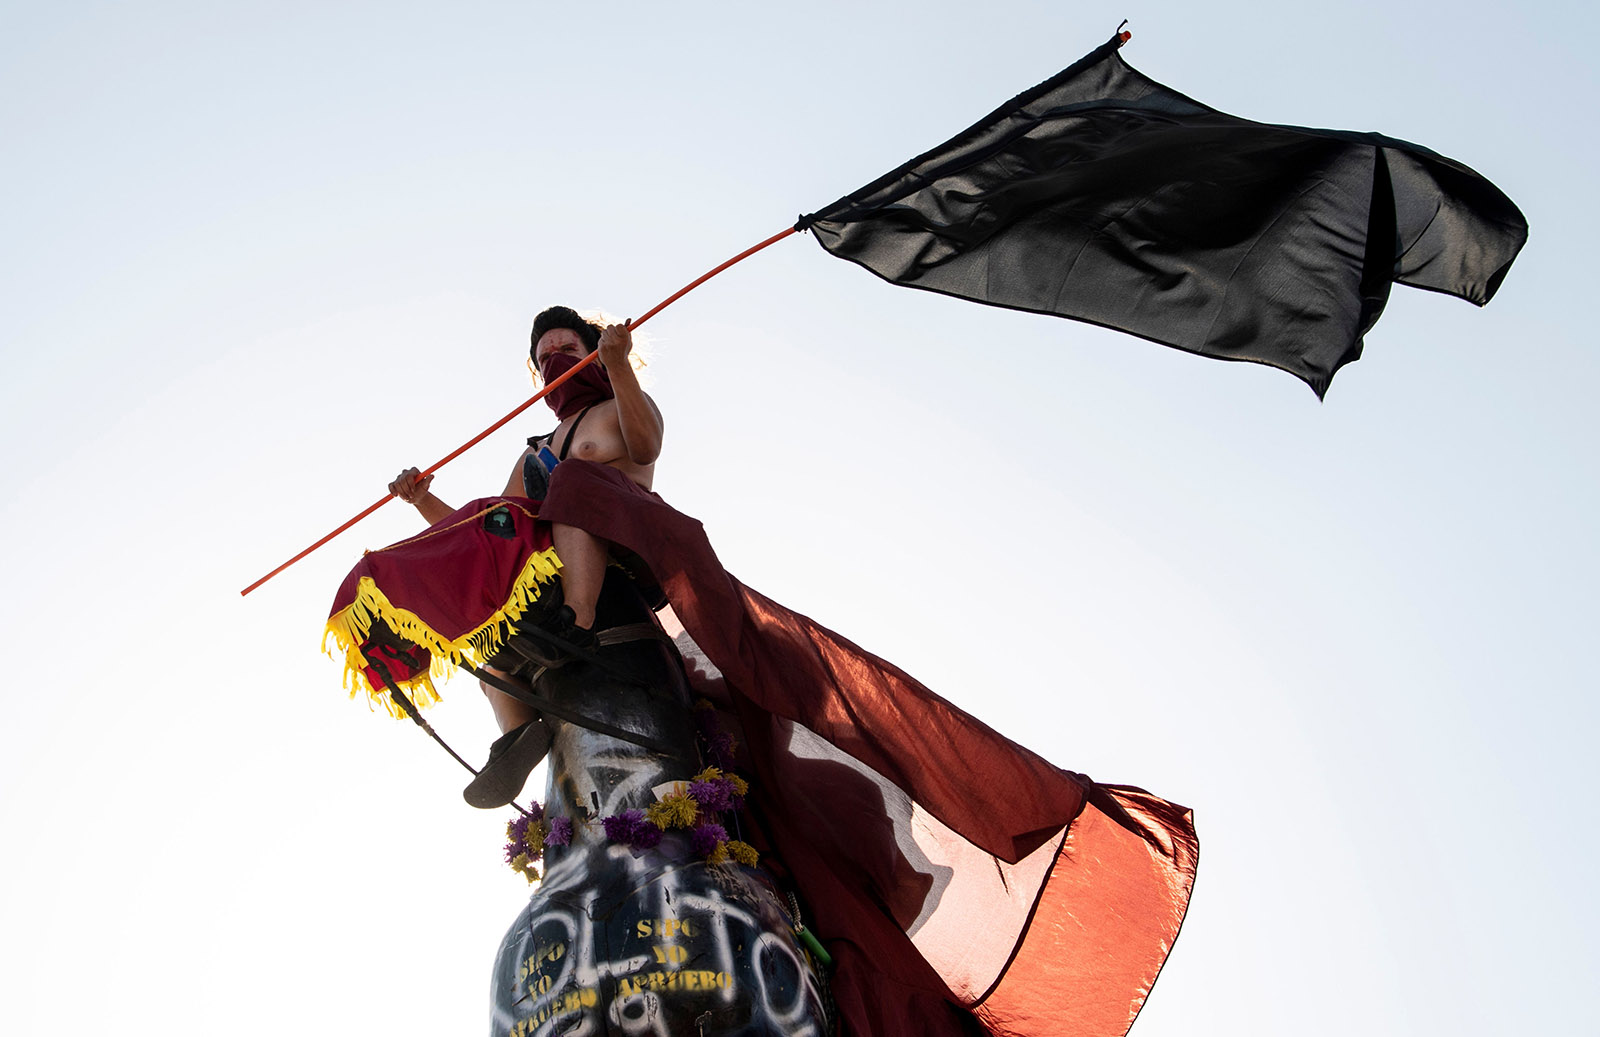 A protester astride the statue of General Baquedano at an International Women's Day demonstration, Santiago, Chile, March 8, 2020